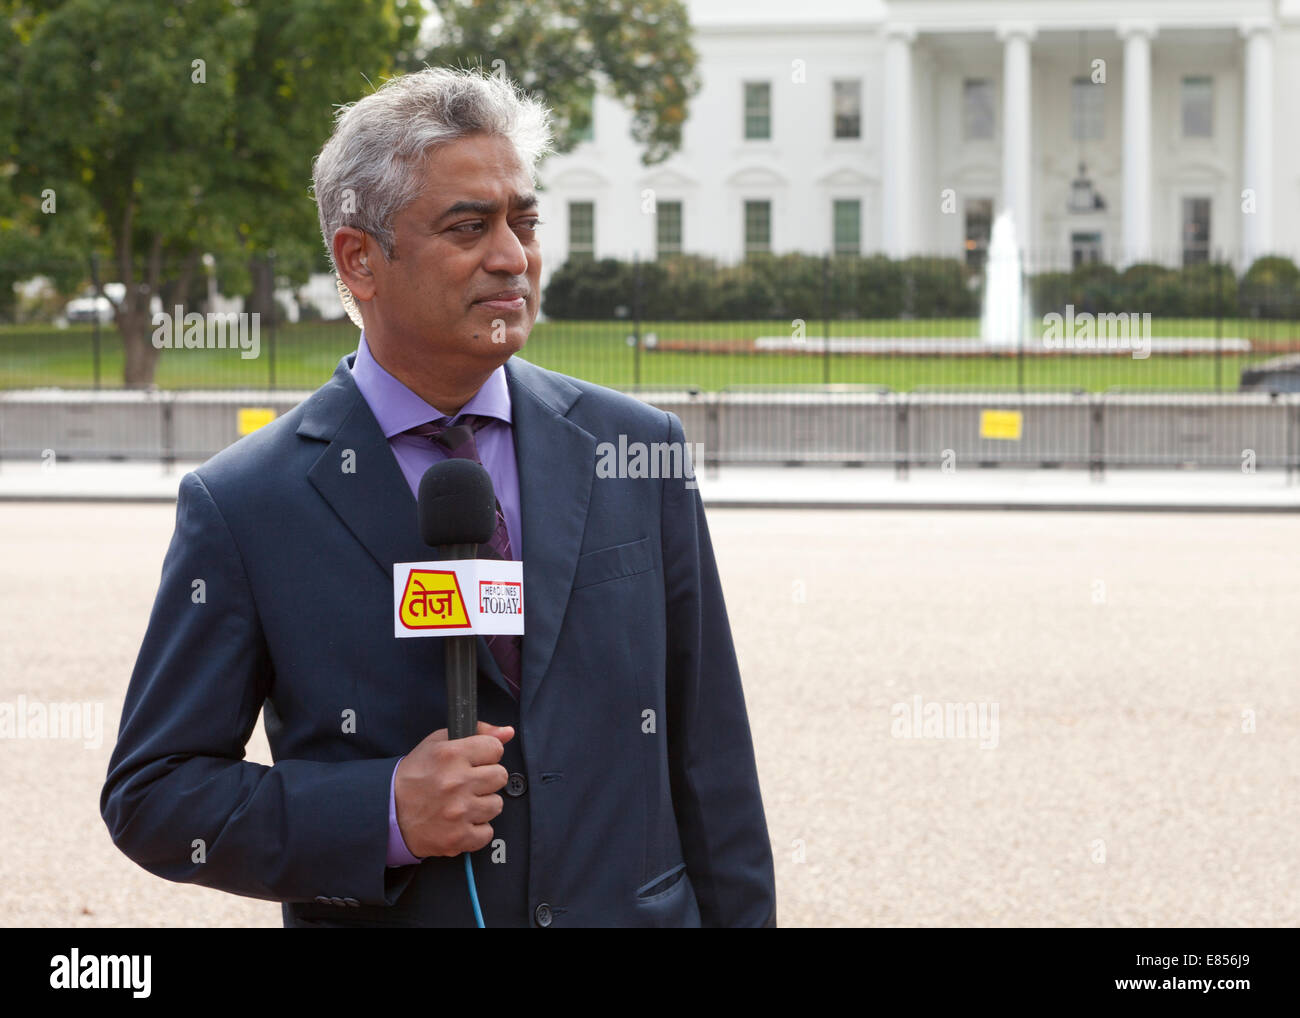 News reporter of Indian decent - USA - Stock Image